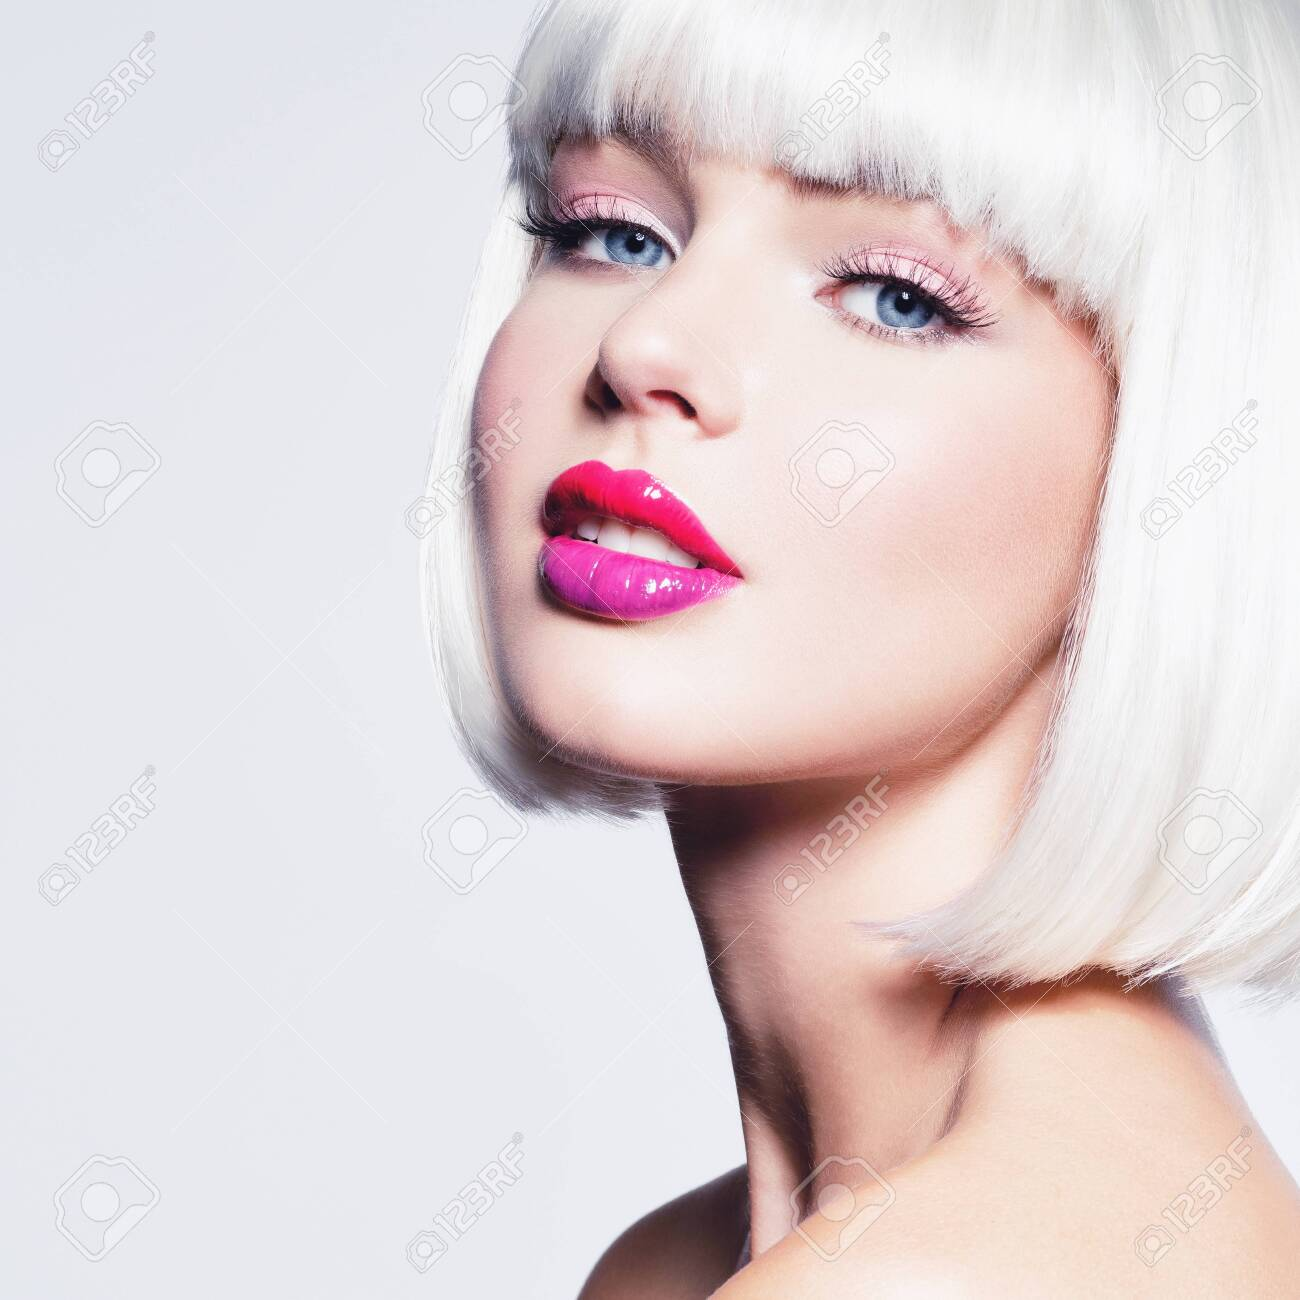 Fashion Stylish Portrait With White Short Hair Beautiful Girl S Stock Photo Picture And Royalty Free Image Image 122585591